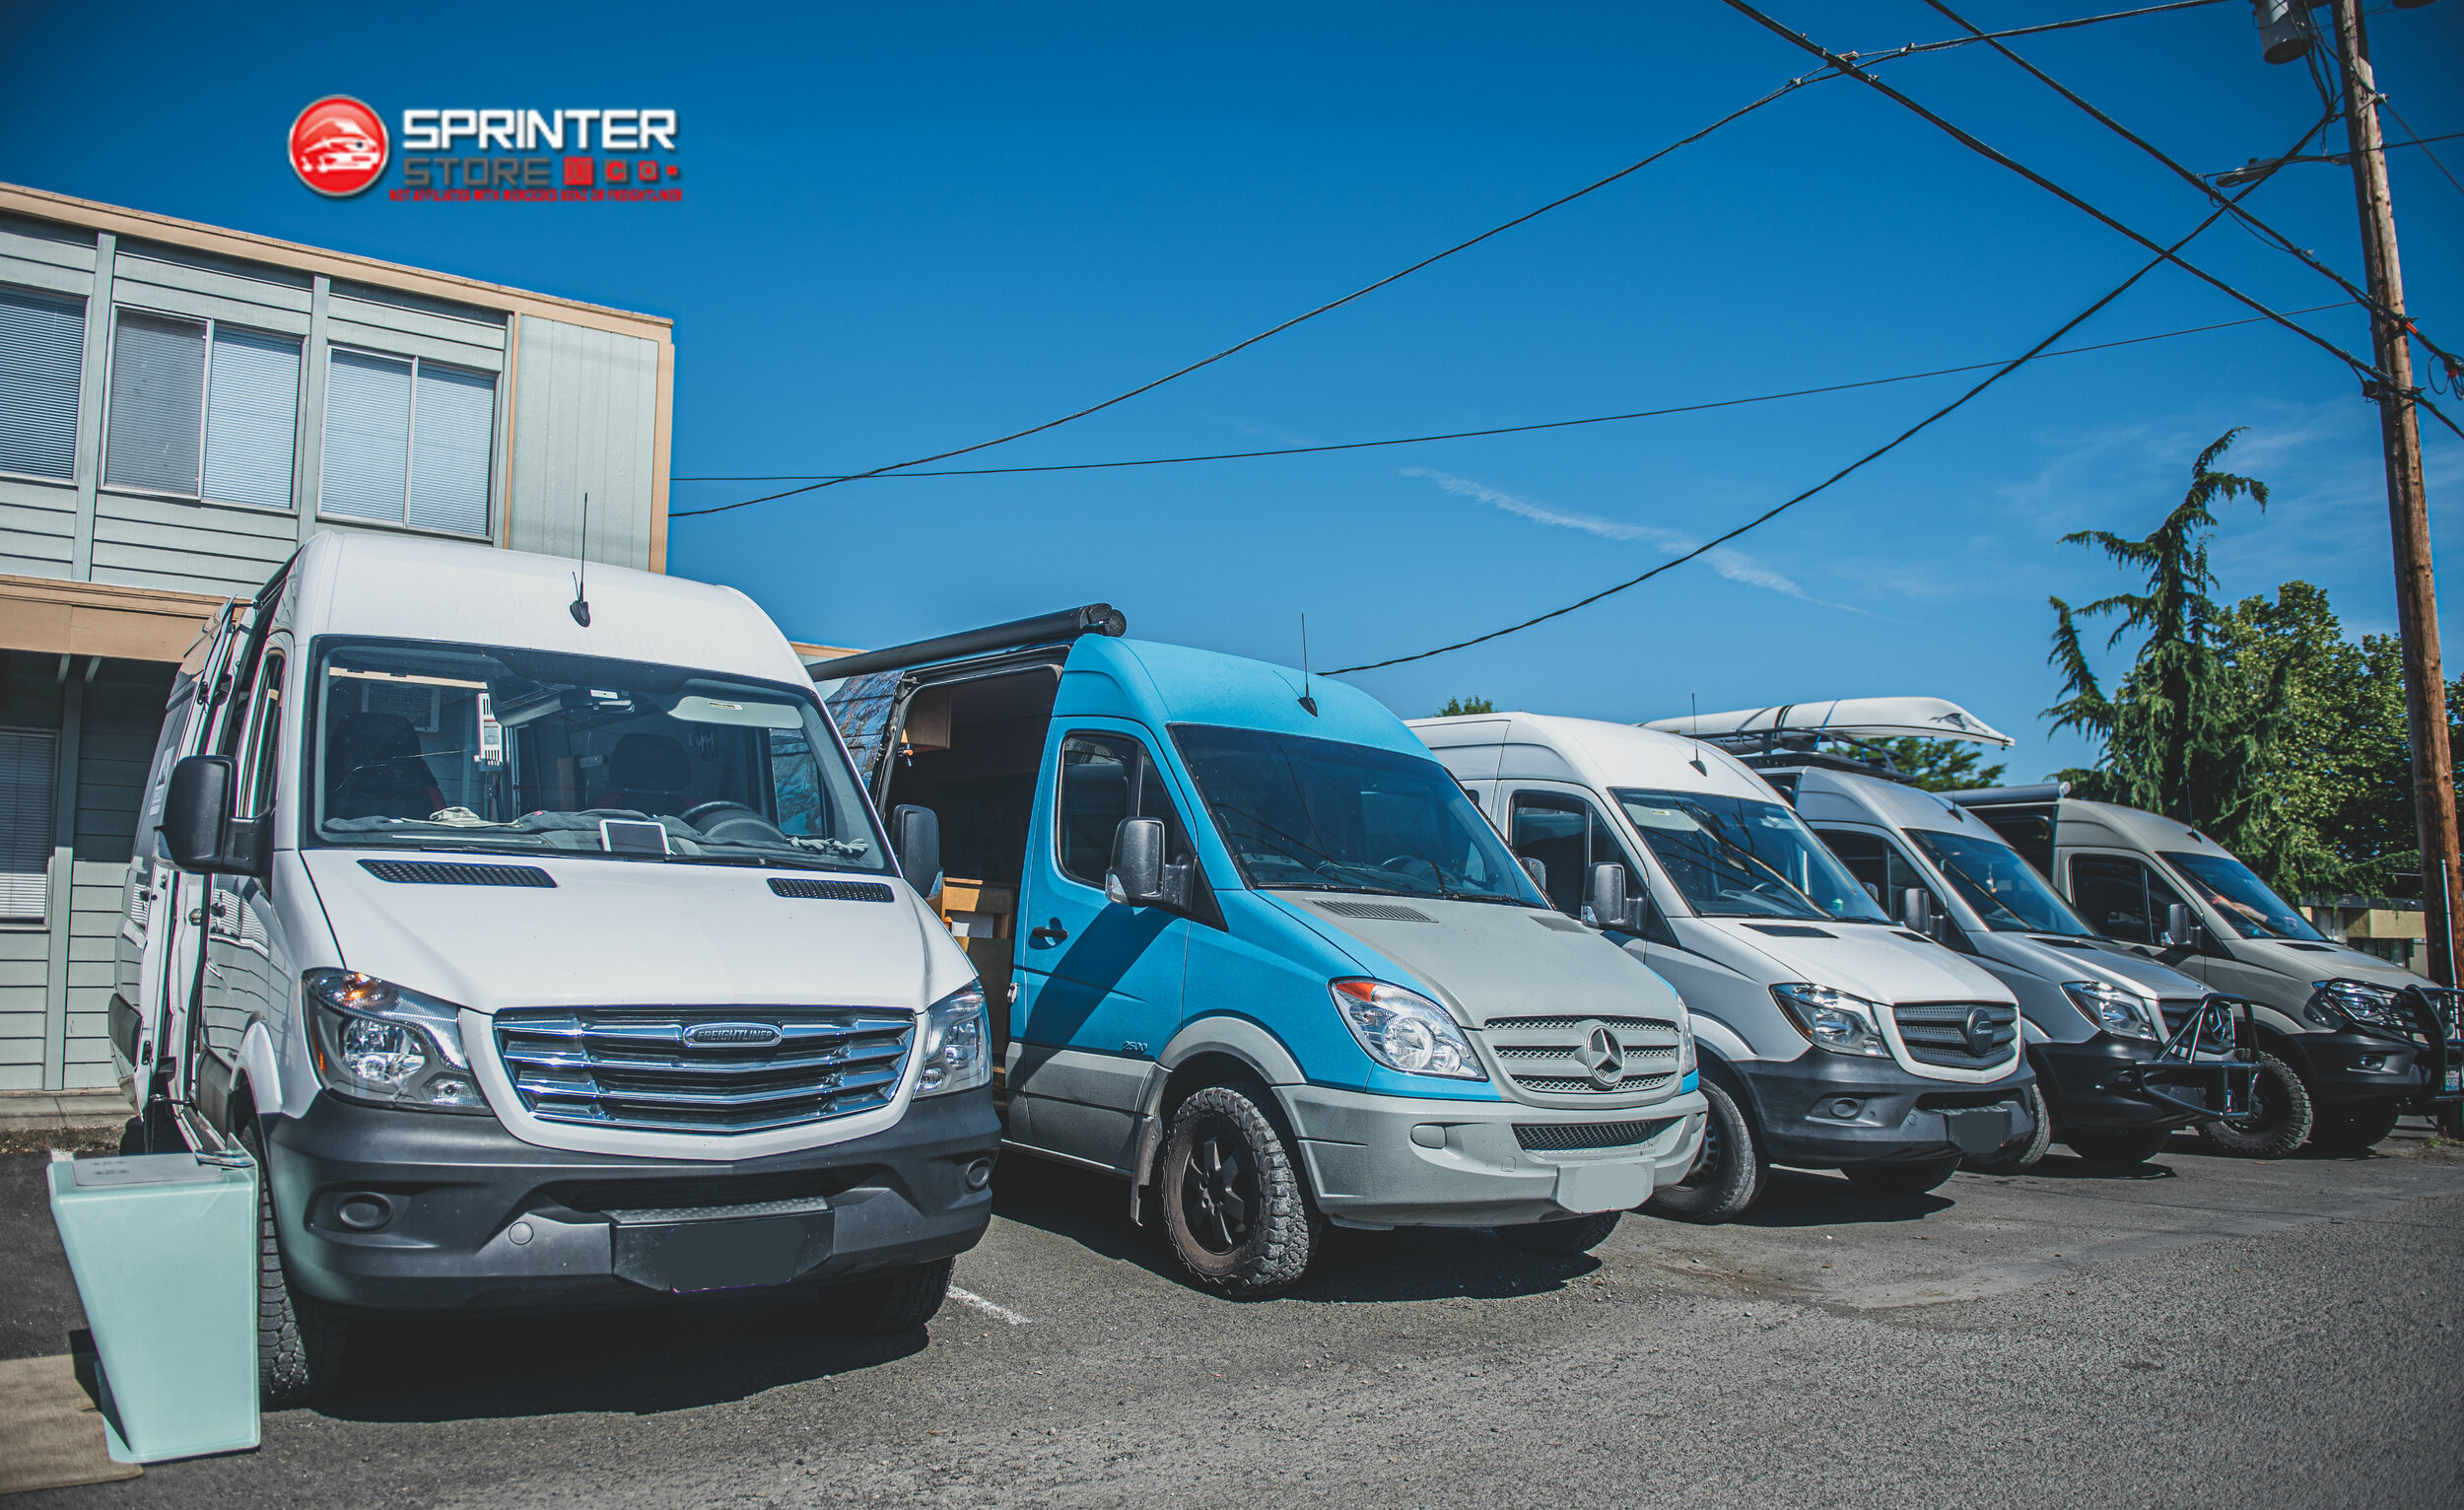 Sprinter Service & Parts Store LLC  19460 SW 89TH AVE  Tualatin, OR 97062  Hours: Mon-Fri 8-5